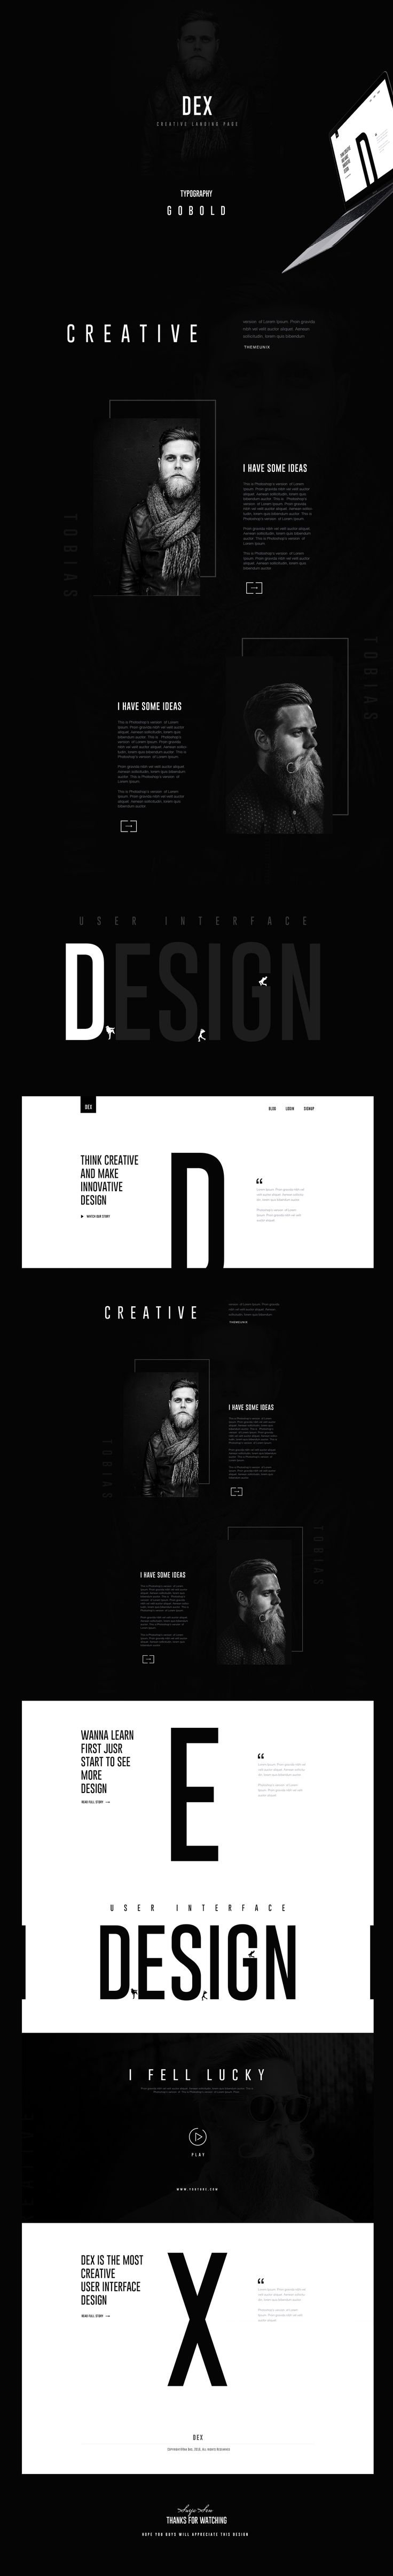 DEX : Creative Landing Page Design